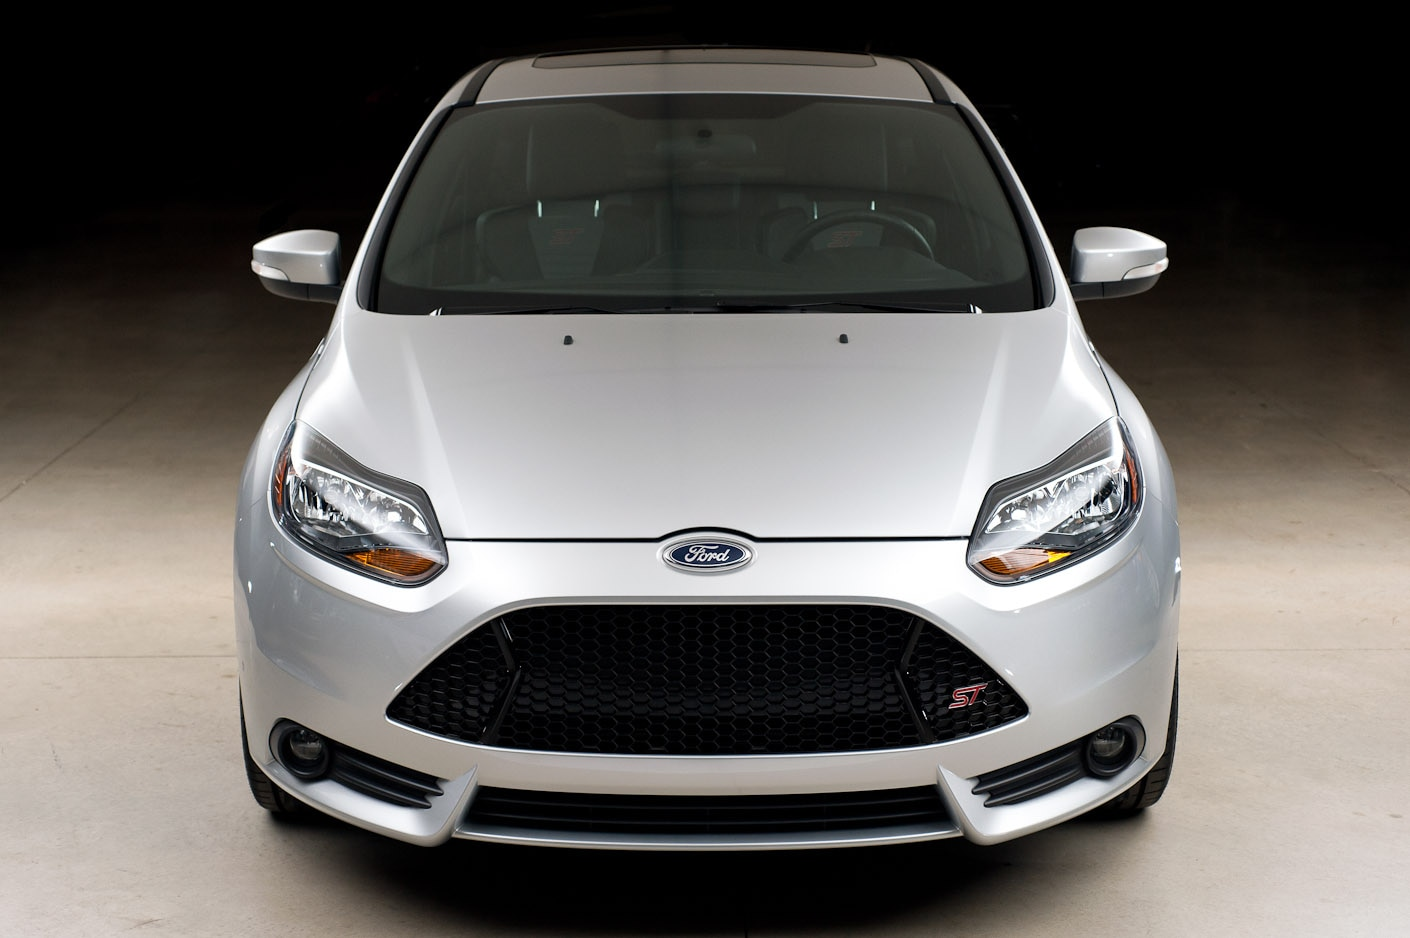 2013 Ford Focus St Front View1